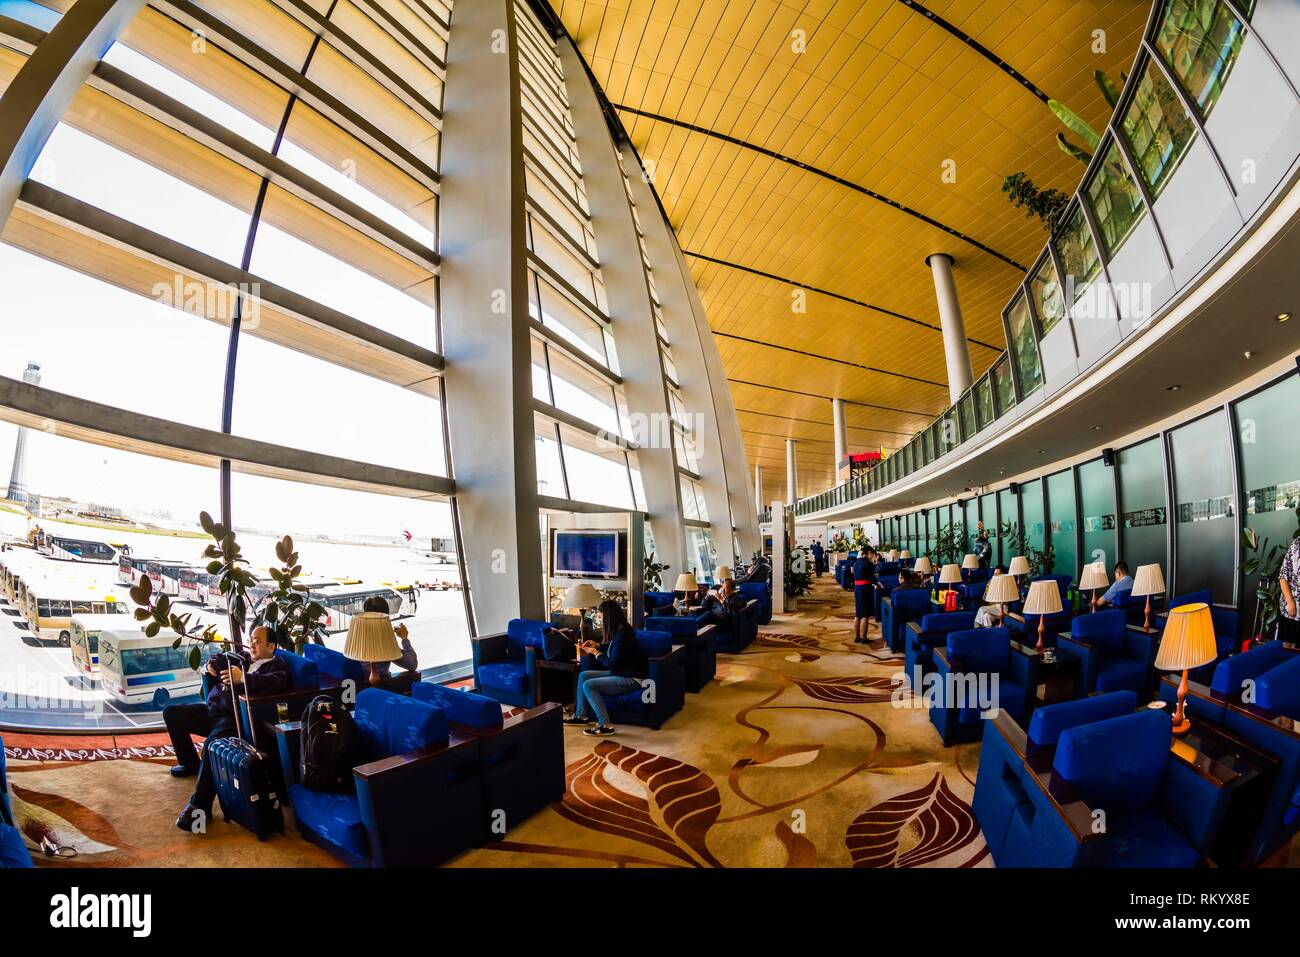 China Eastern Airlines Business Class Lounge, Kunming Changshui International Airport, Kunming, Yunnan Province, China. - Stock Image